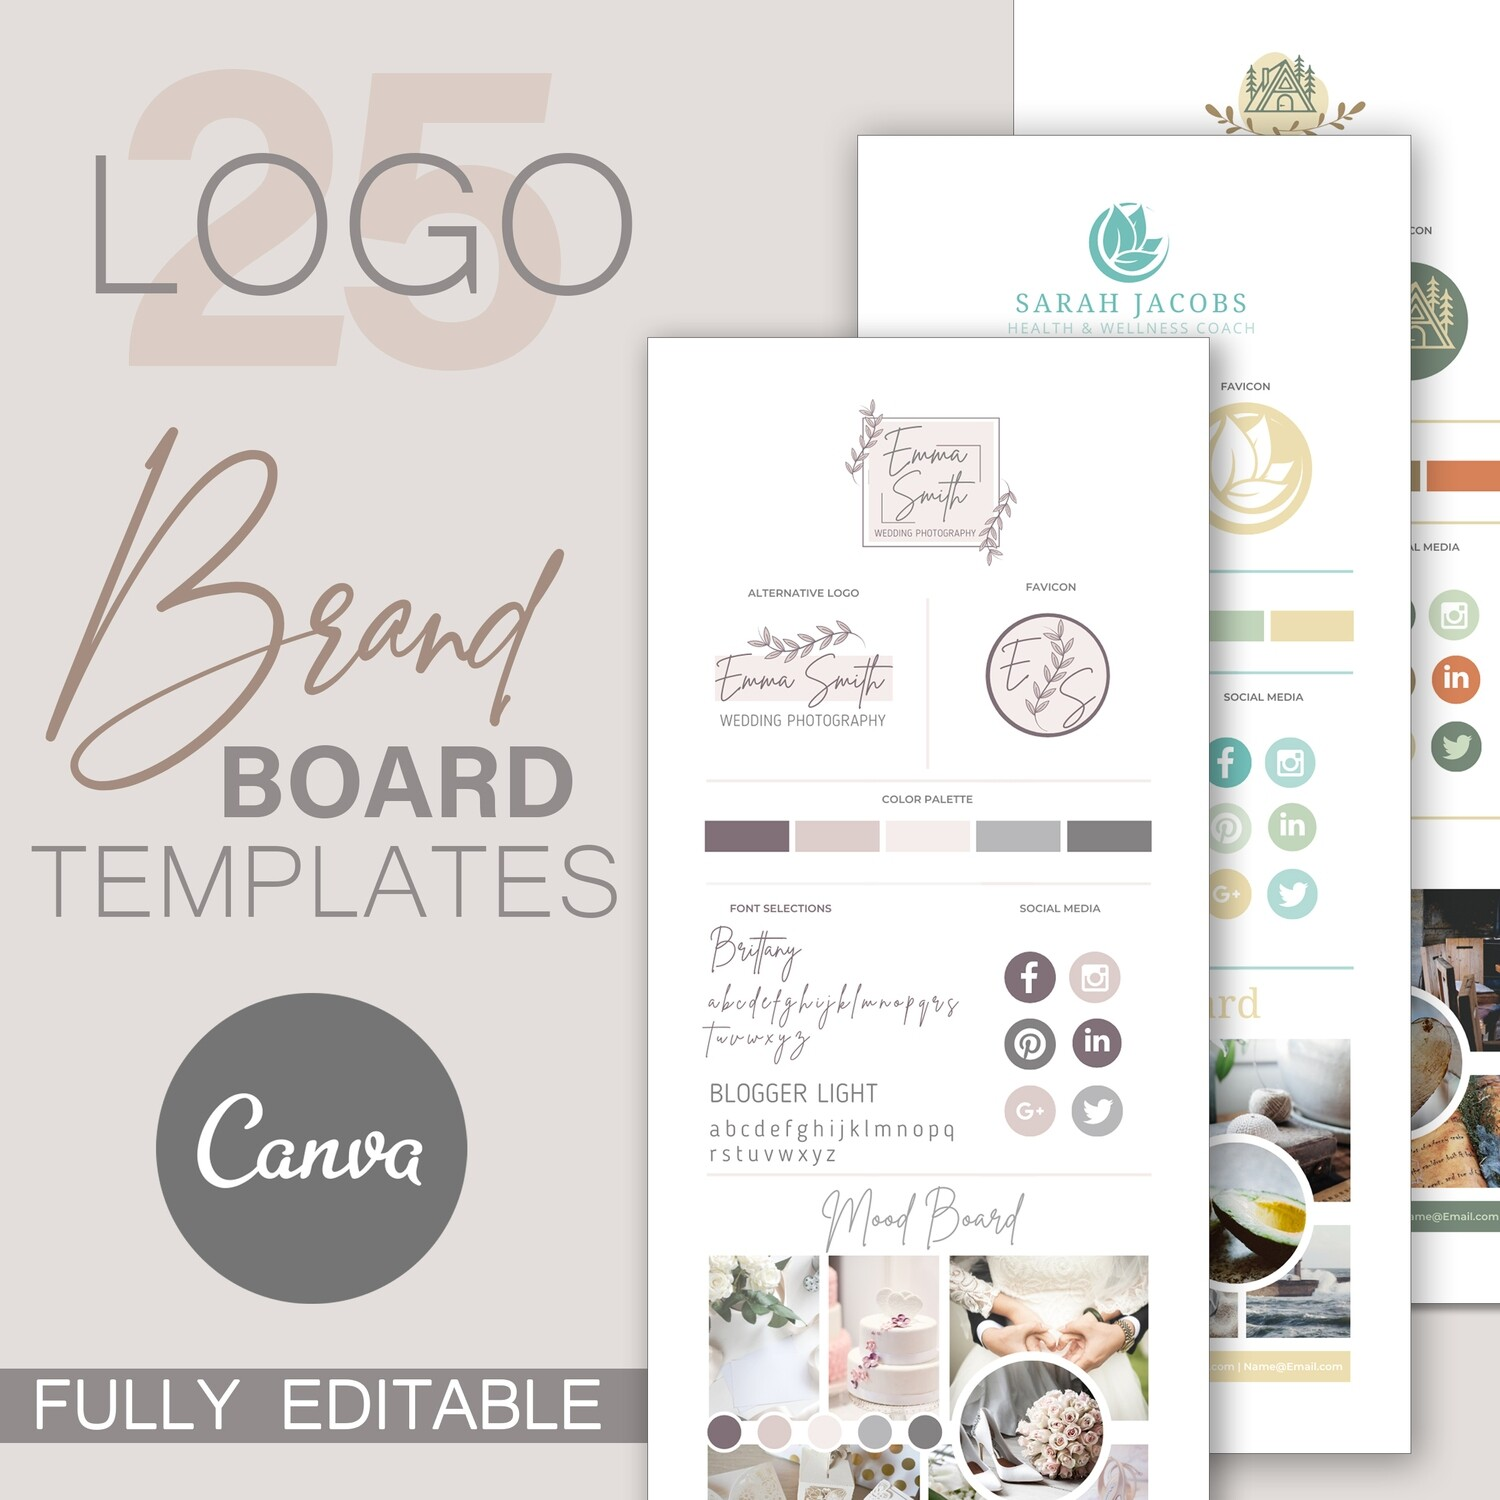 25 Brand Boards & Logo Templates For Canva